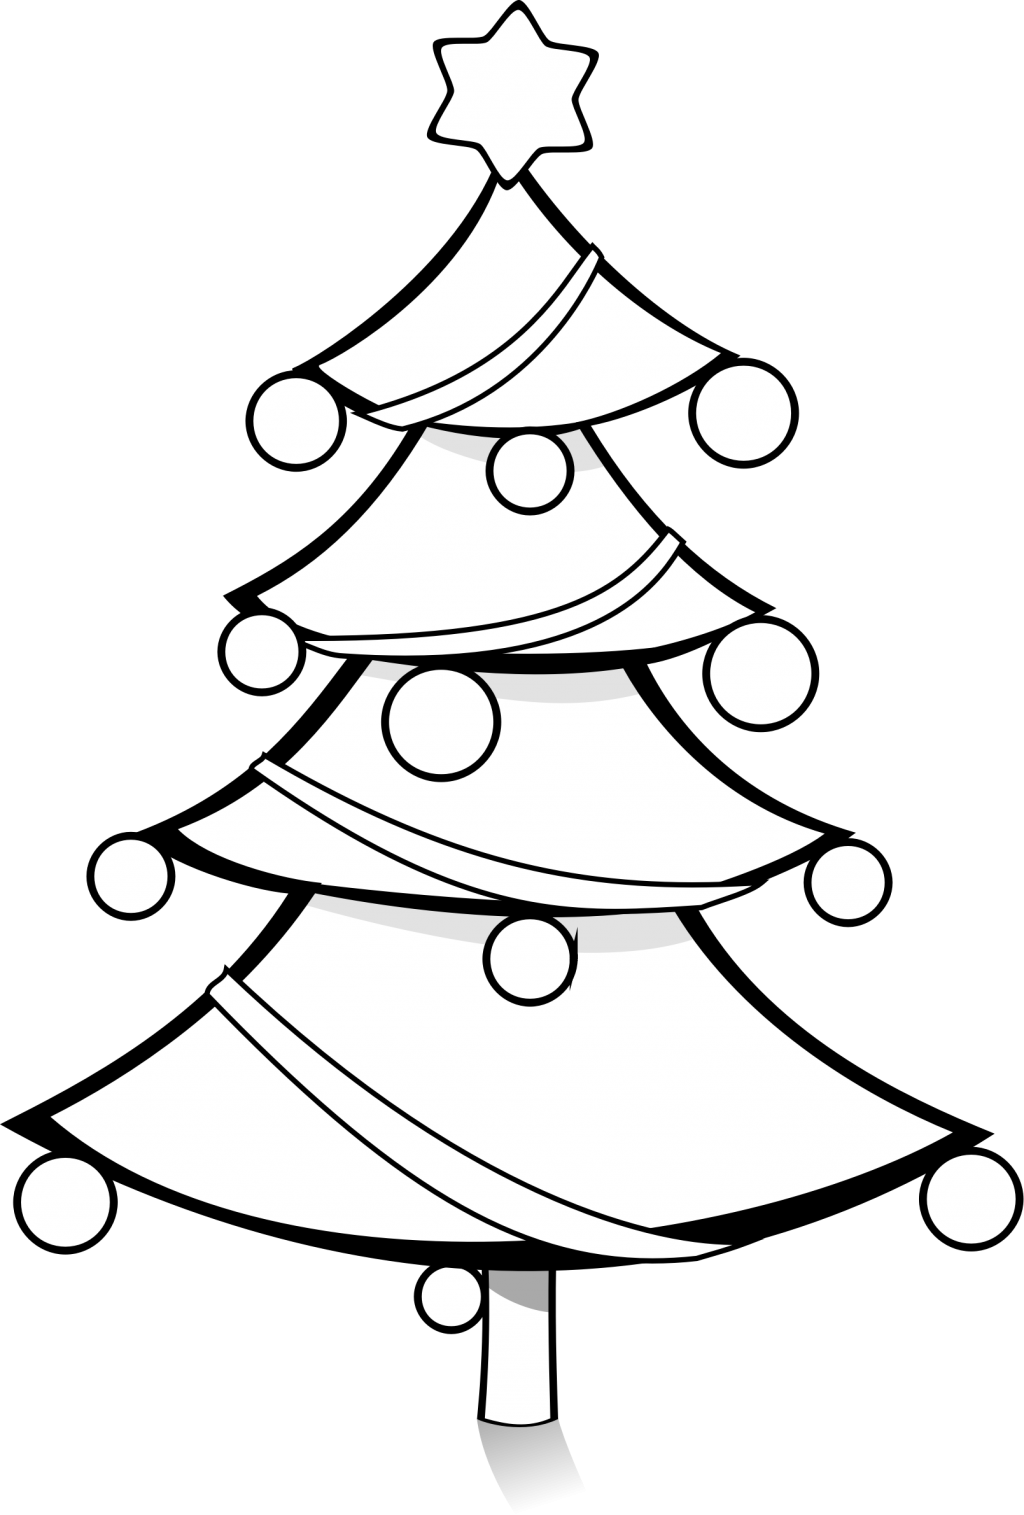 Christmas tree outline png. Baby nursery easy the